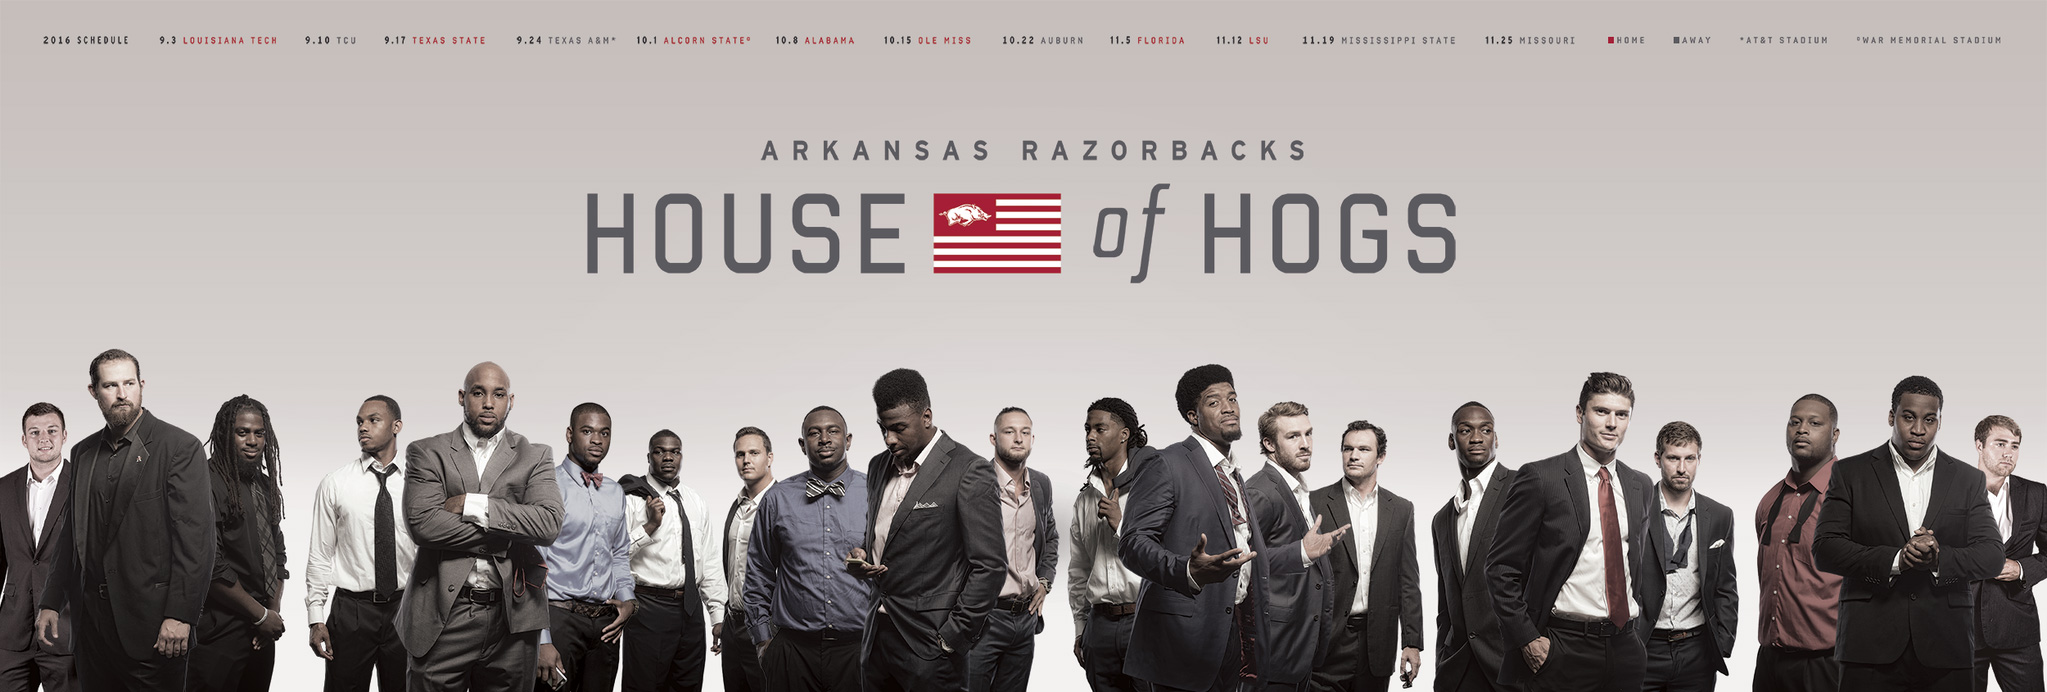 House of Hogs